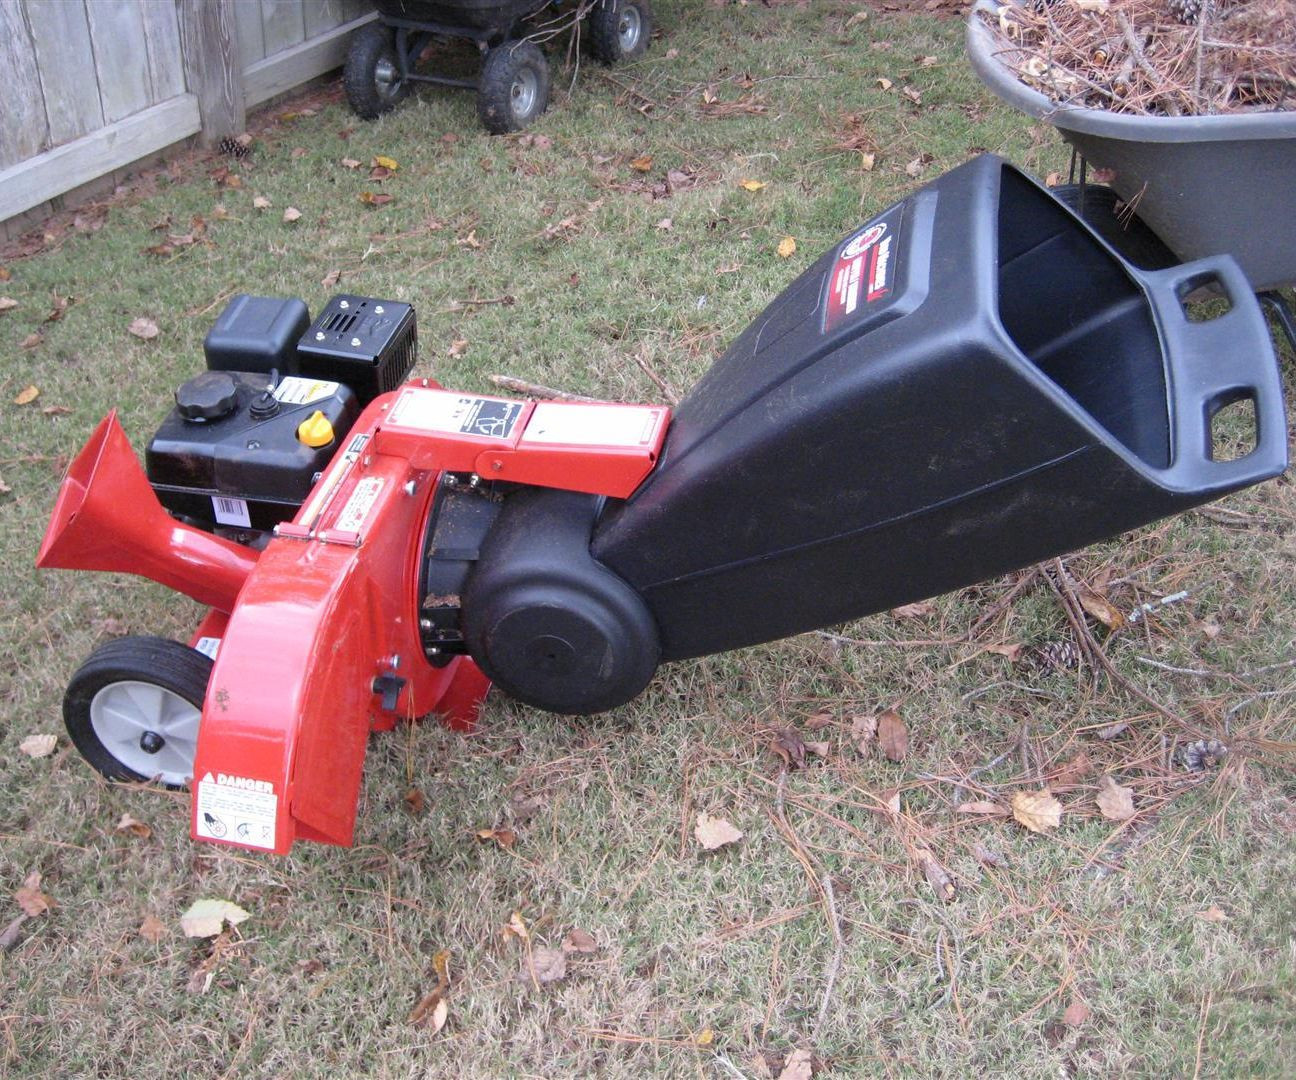 Best ideas about DIY Wood Chippers . Save or Pin DIY Wood Chipper Shredder Tamper Tool 2 Now.